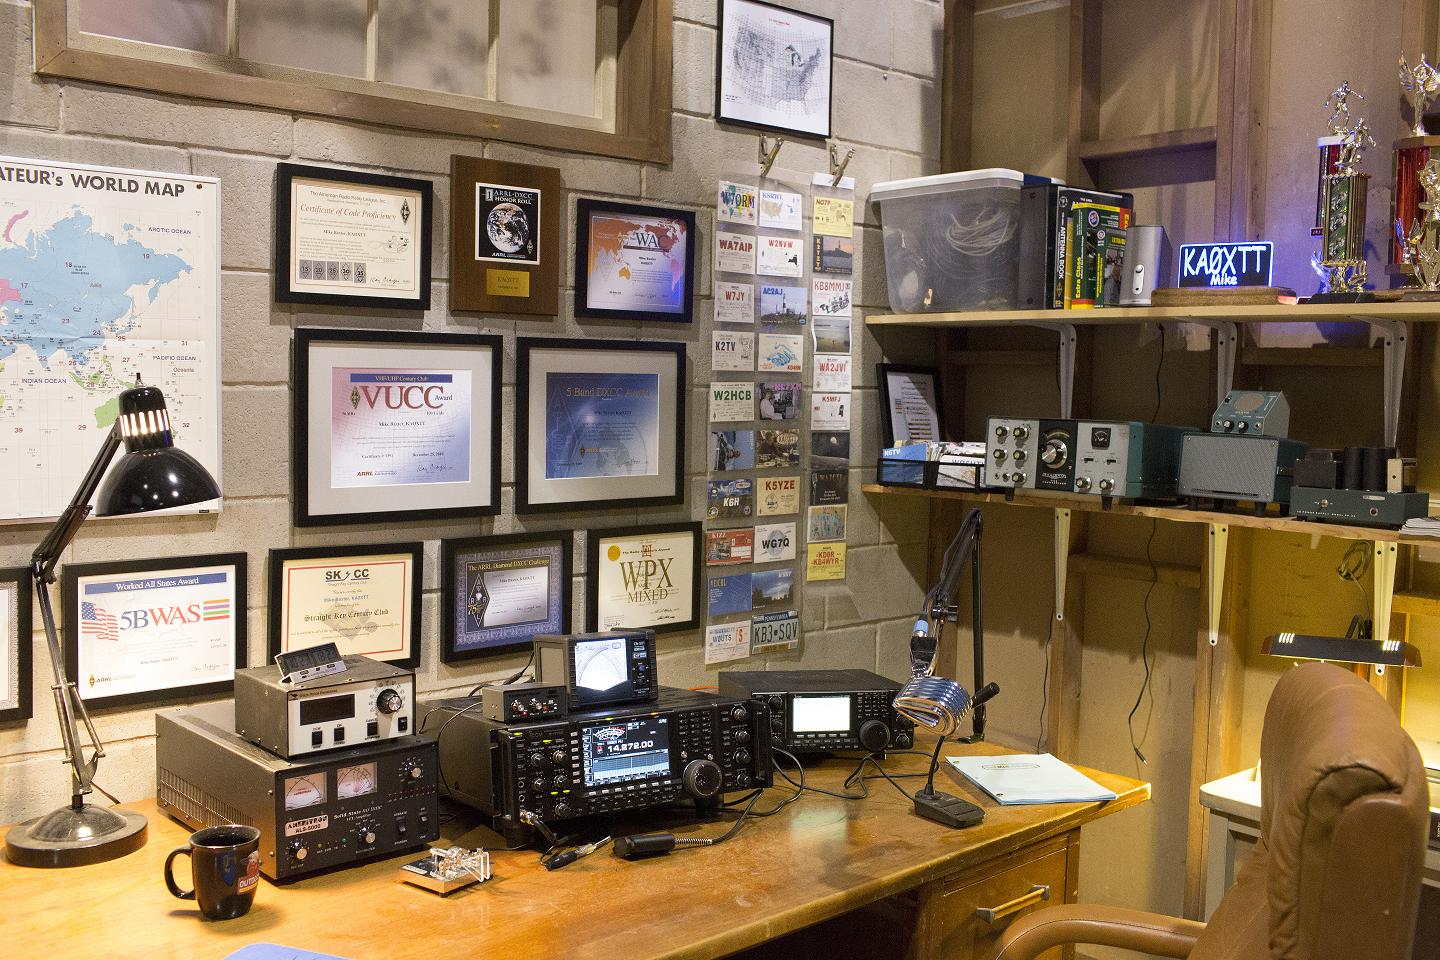 Amateur Radio Station Wb4omm: What Ham Radio Was Featured On Last Man Standing?